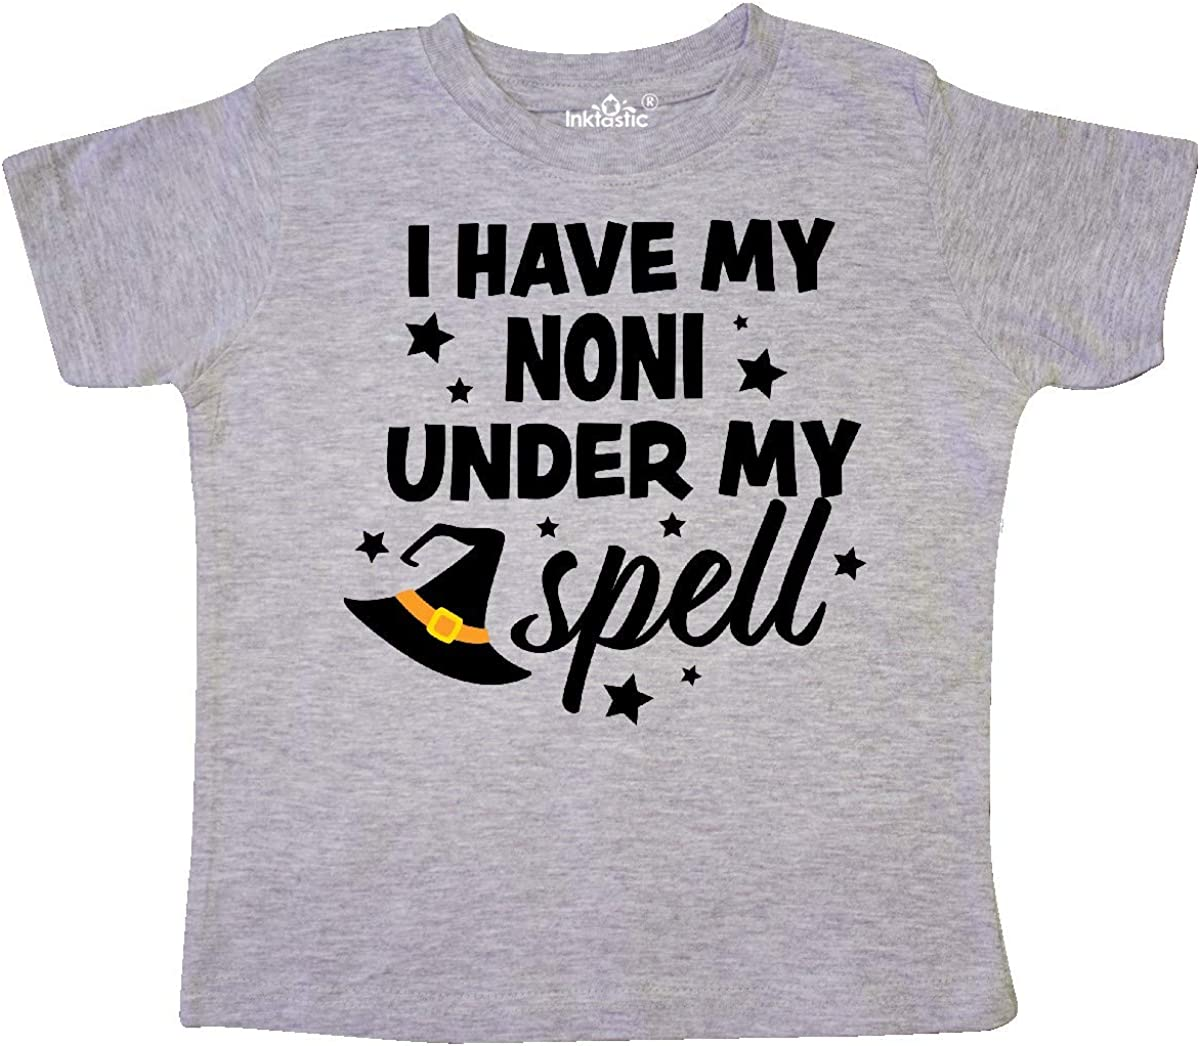 inktastic I Have My Noni Under My Spell with Cute Witch Hat Toddler T-Shirt